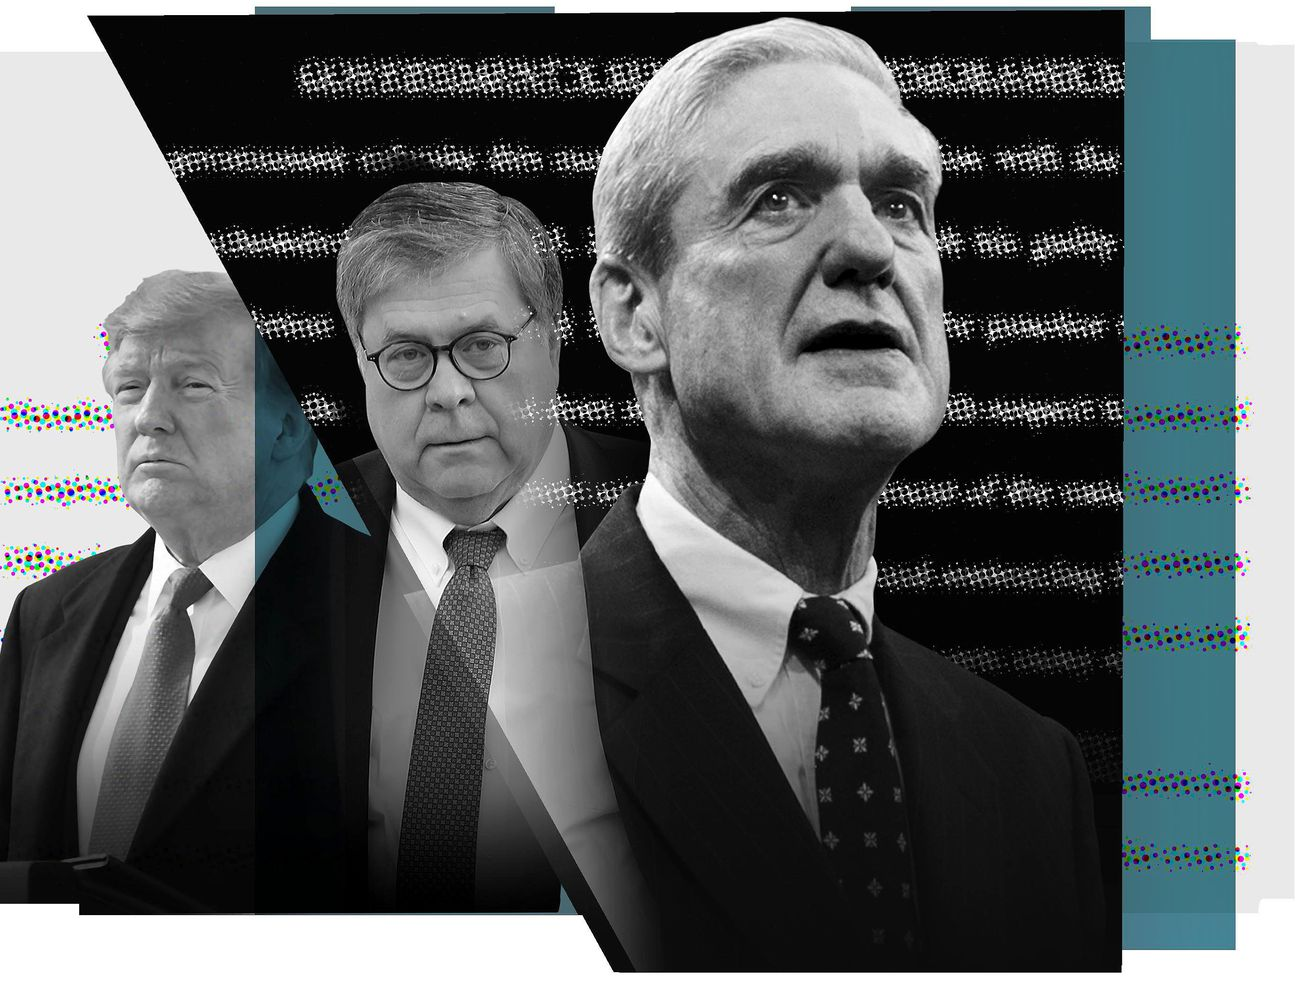 President Trump, William Barr, and Robert Mueller.